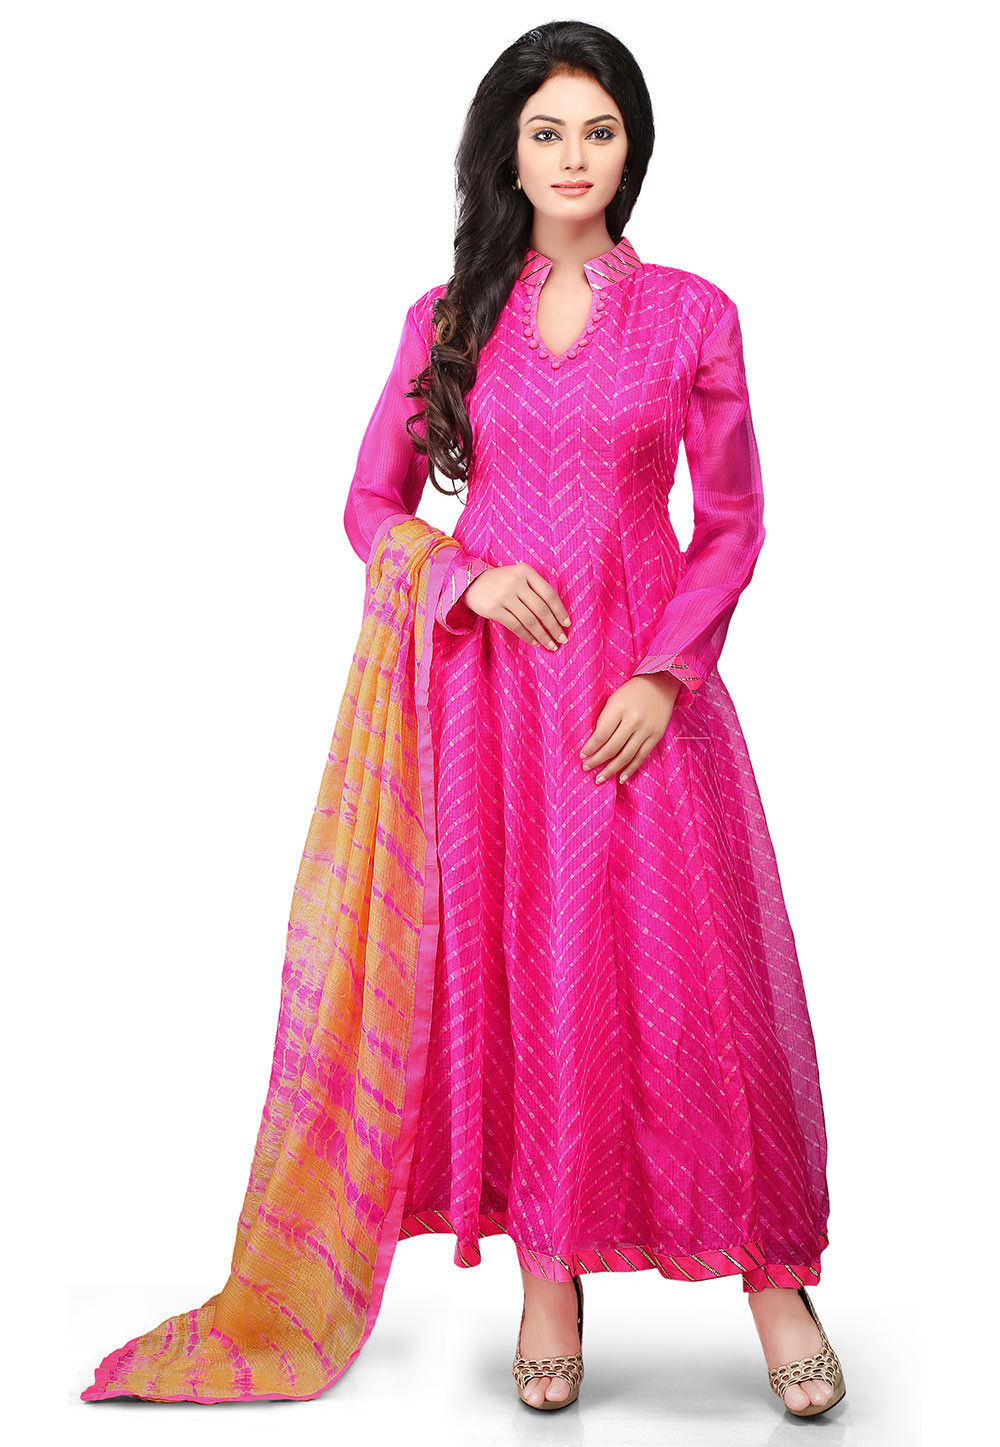 Printed Pure Kota Tissue Abaya Style Suit in Fuchsia